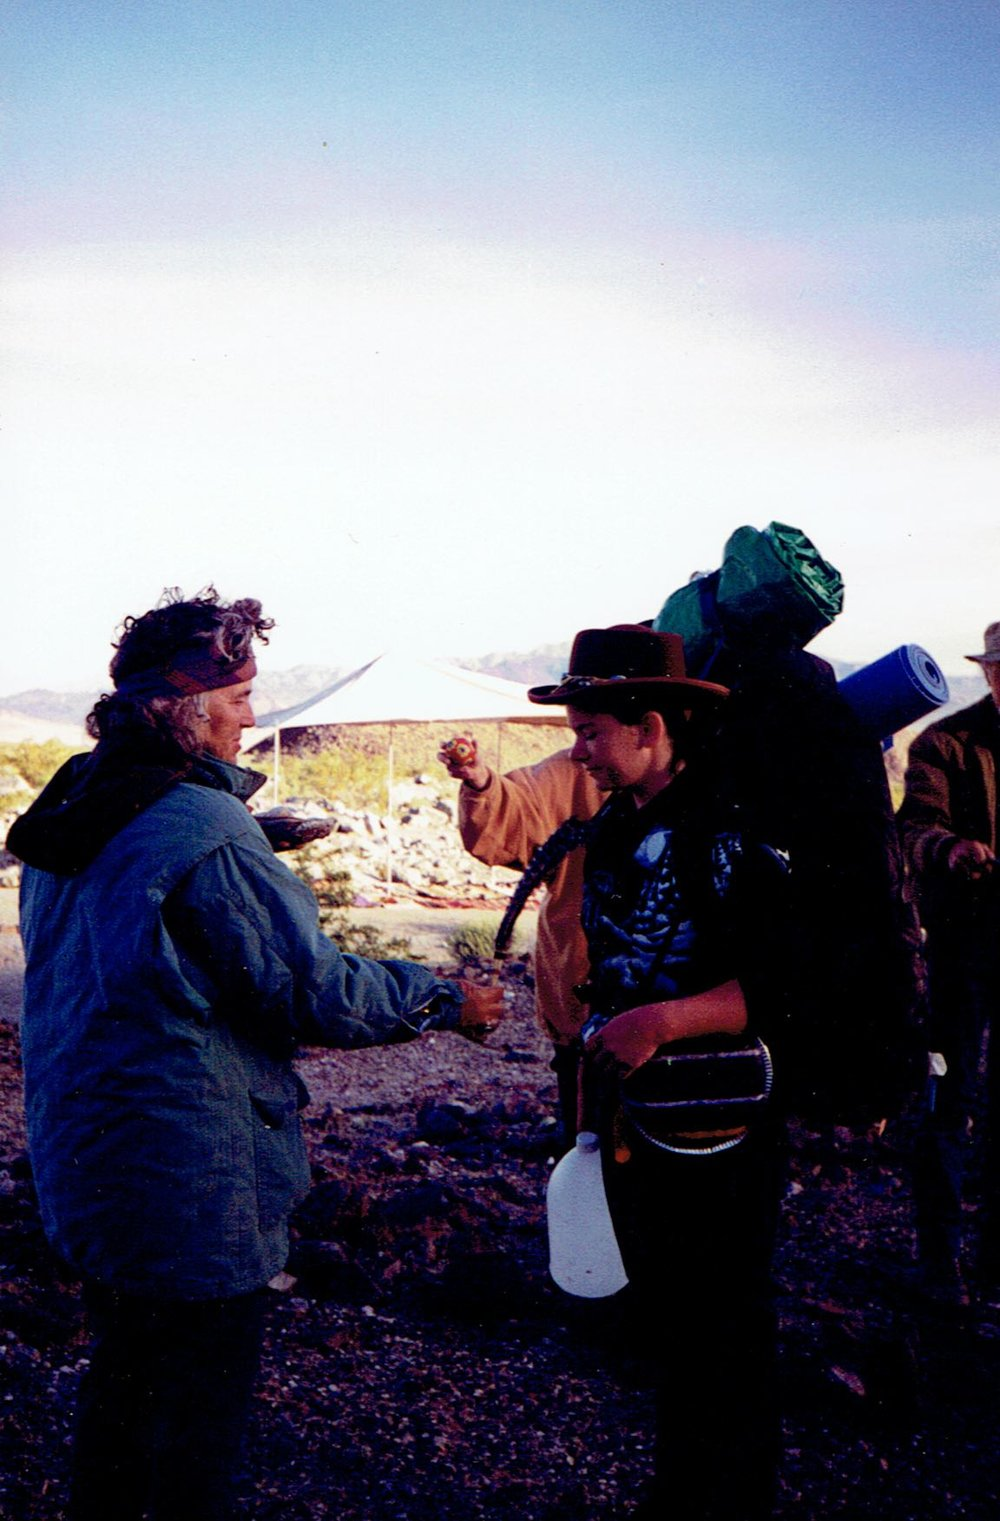 Getting smudged with sage prior to trekking across the Valley two hours to my camping spot where I spent 3 days alone in the wilderness. Circa 1995.